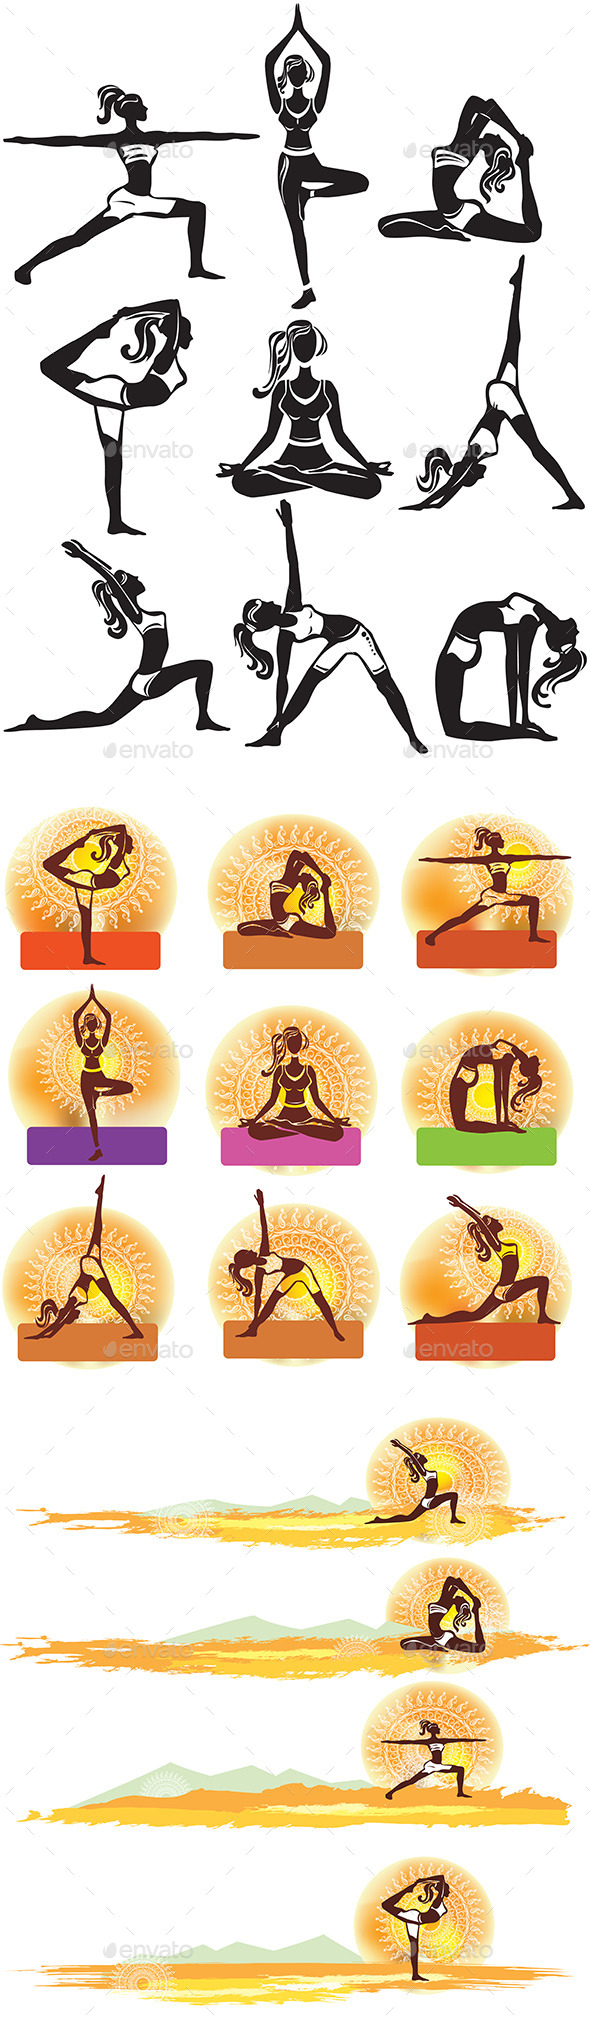 GraphicRiver Set of Meditating and Doing Yoga Poses 10575157